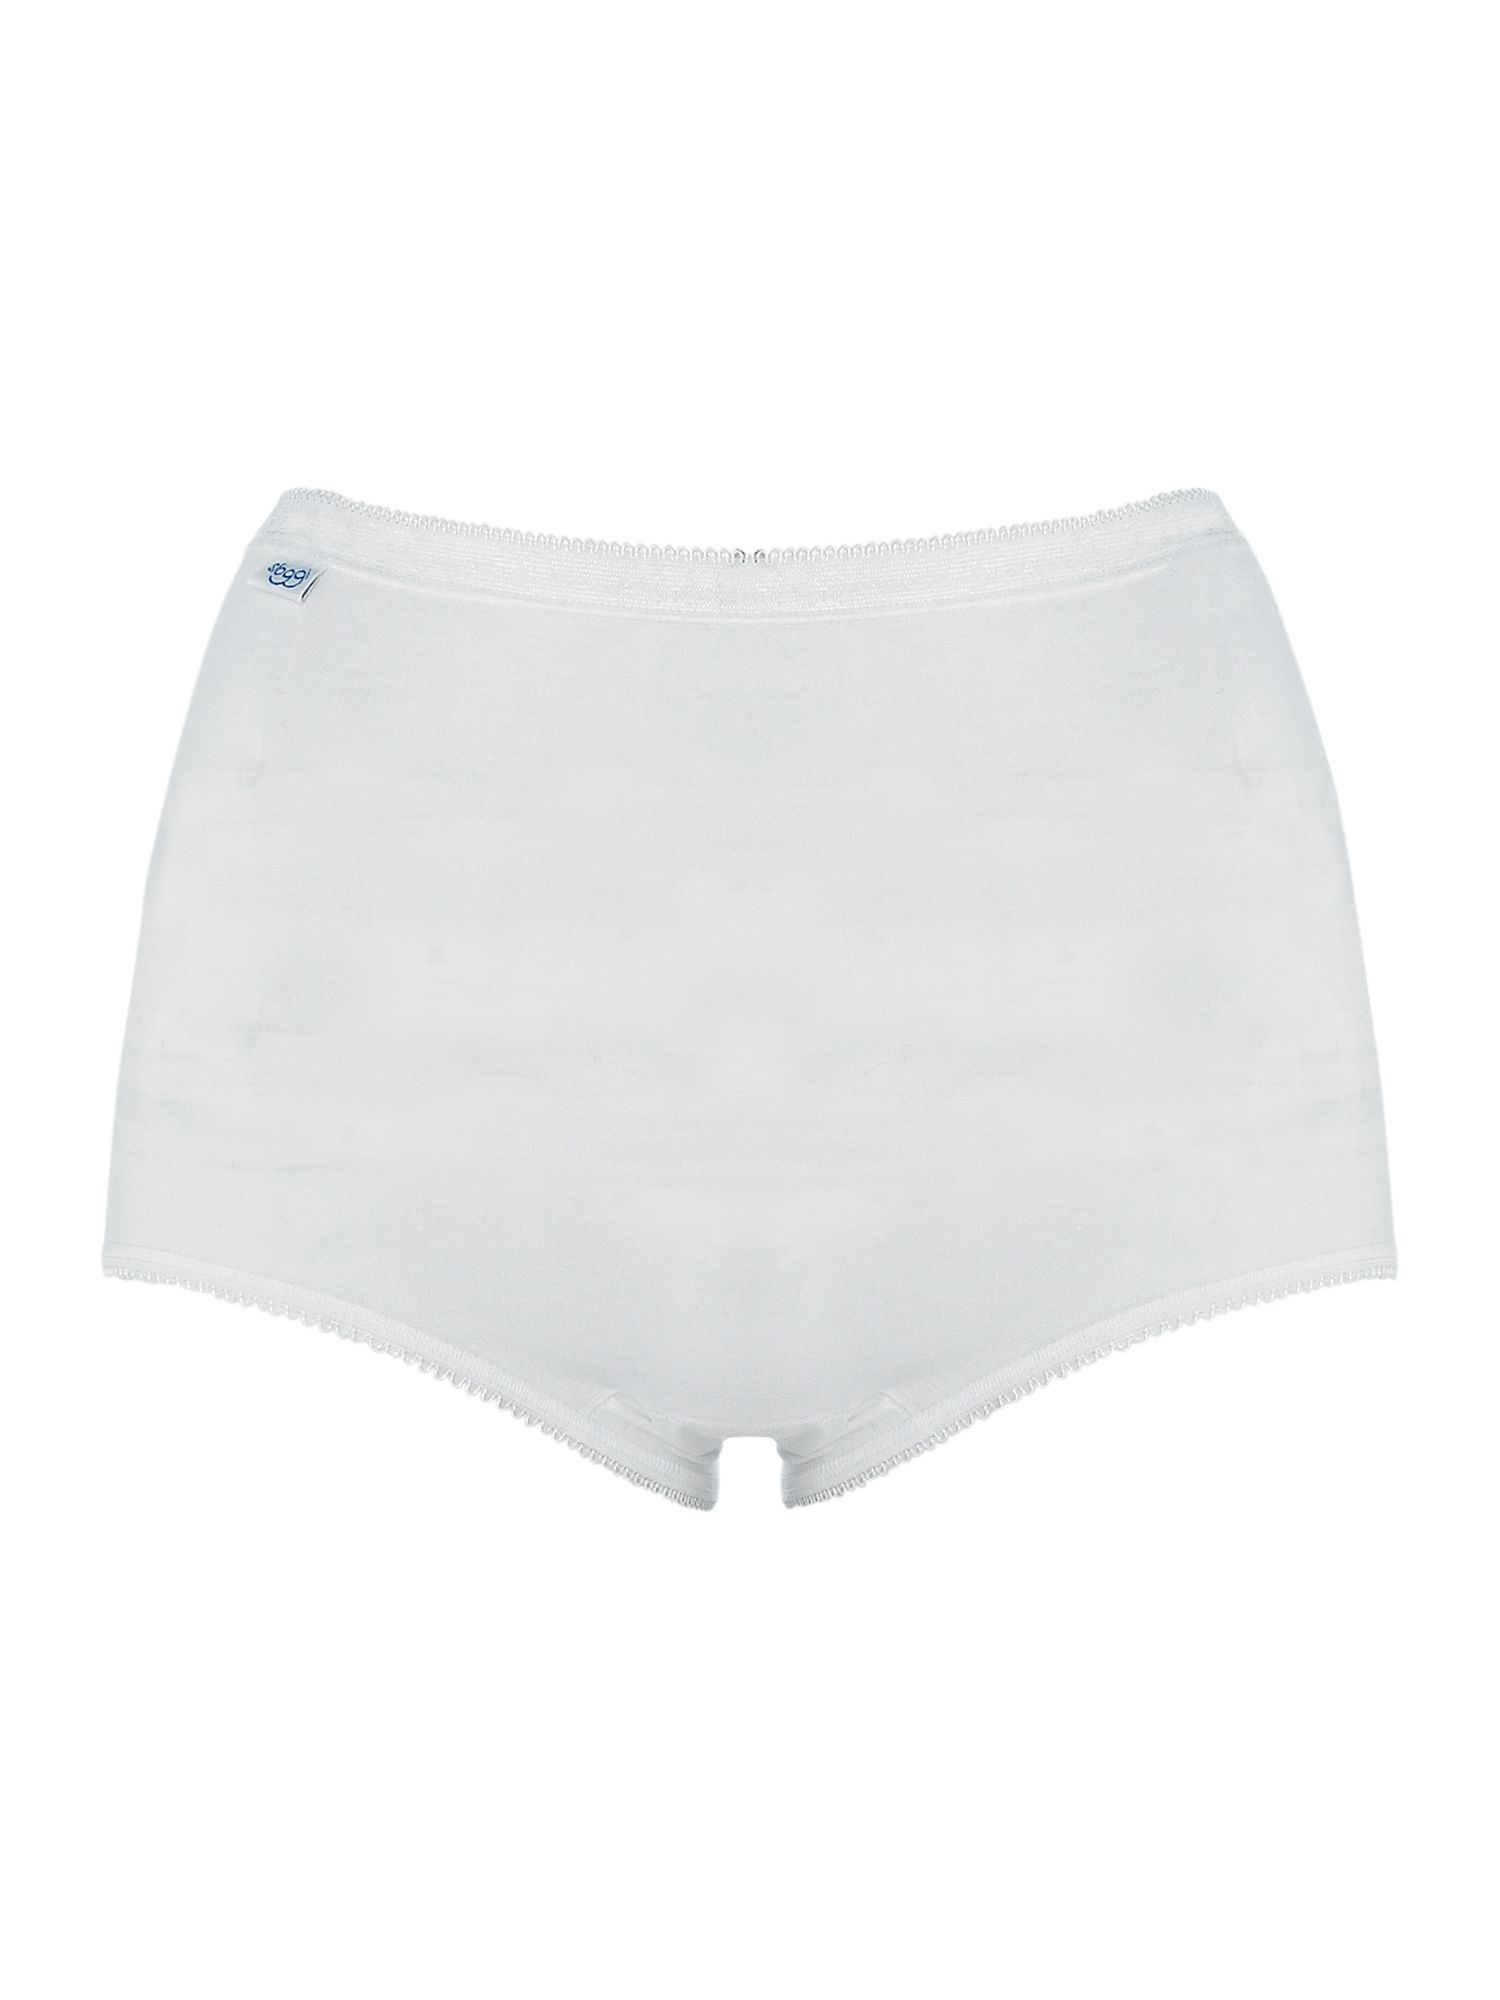 Sloggi 3 pack maxi briefs White